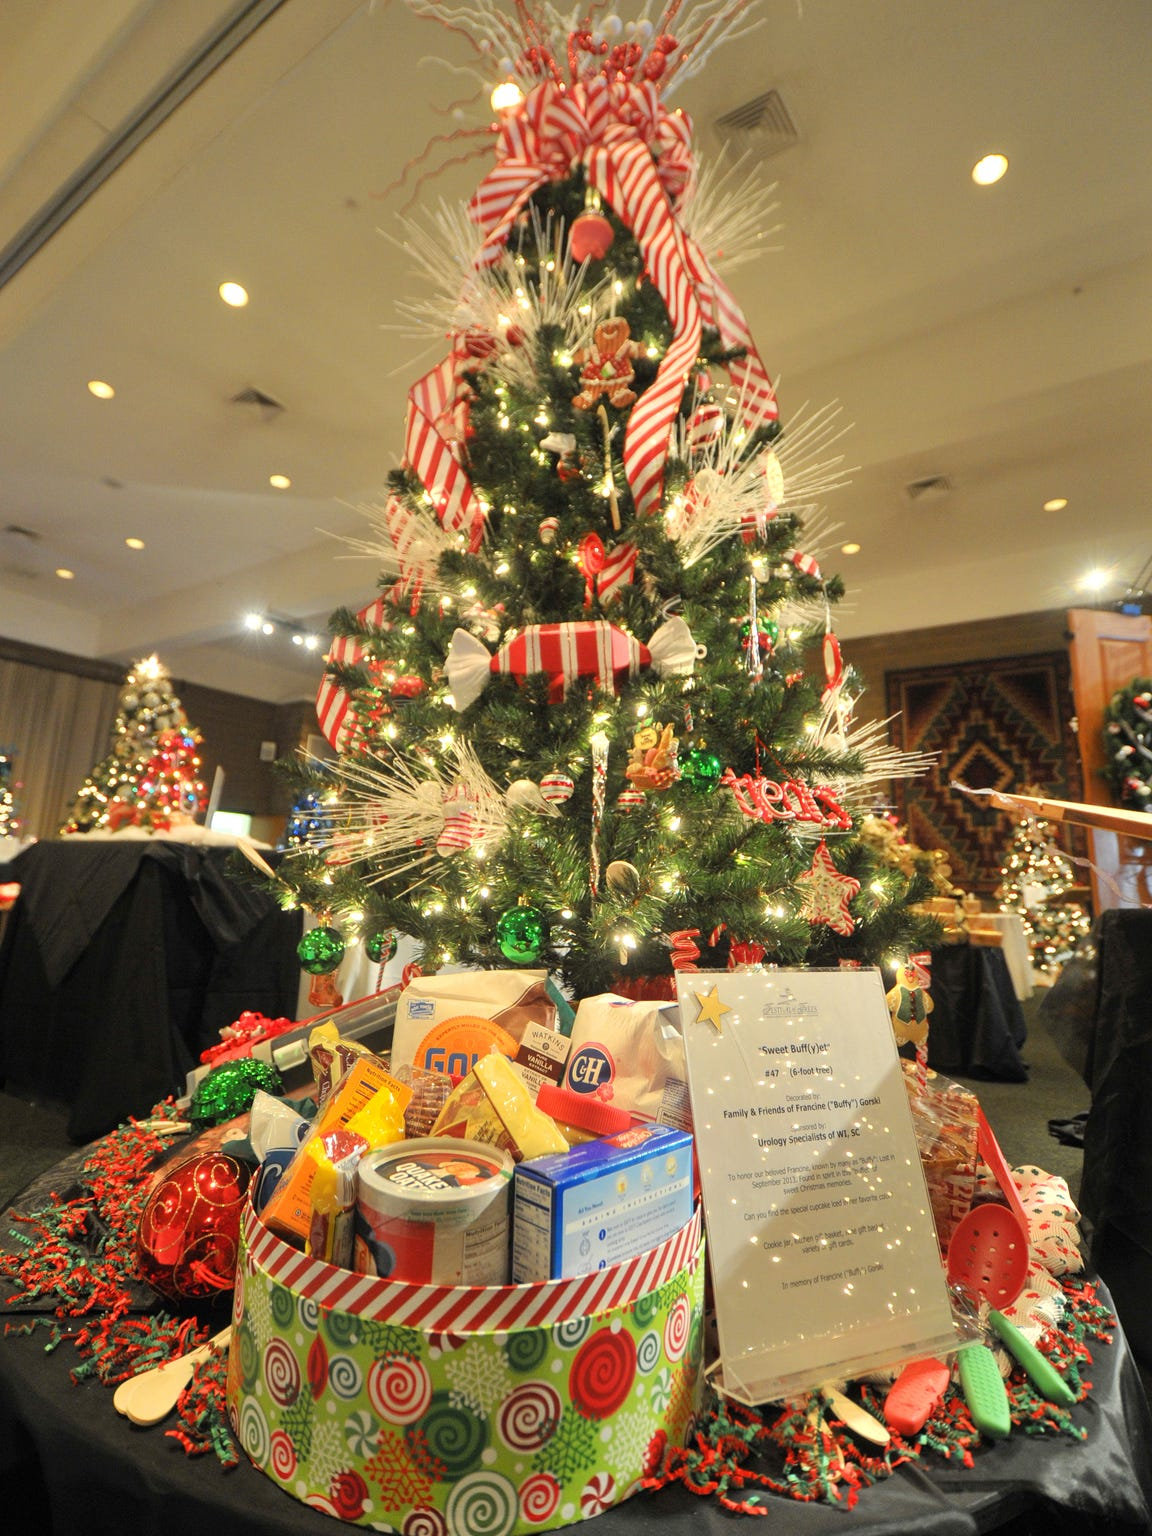 A tree lights up the room at Stoney Creek Inn in Rothschild